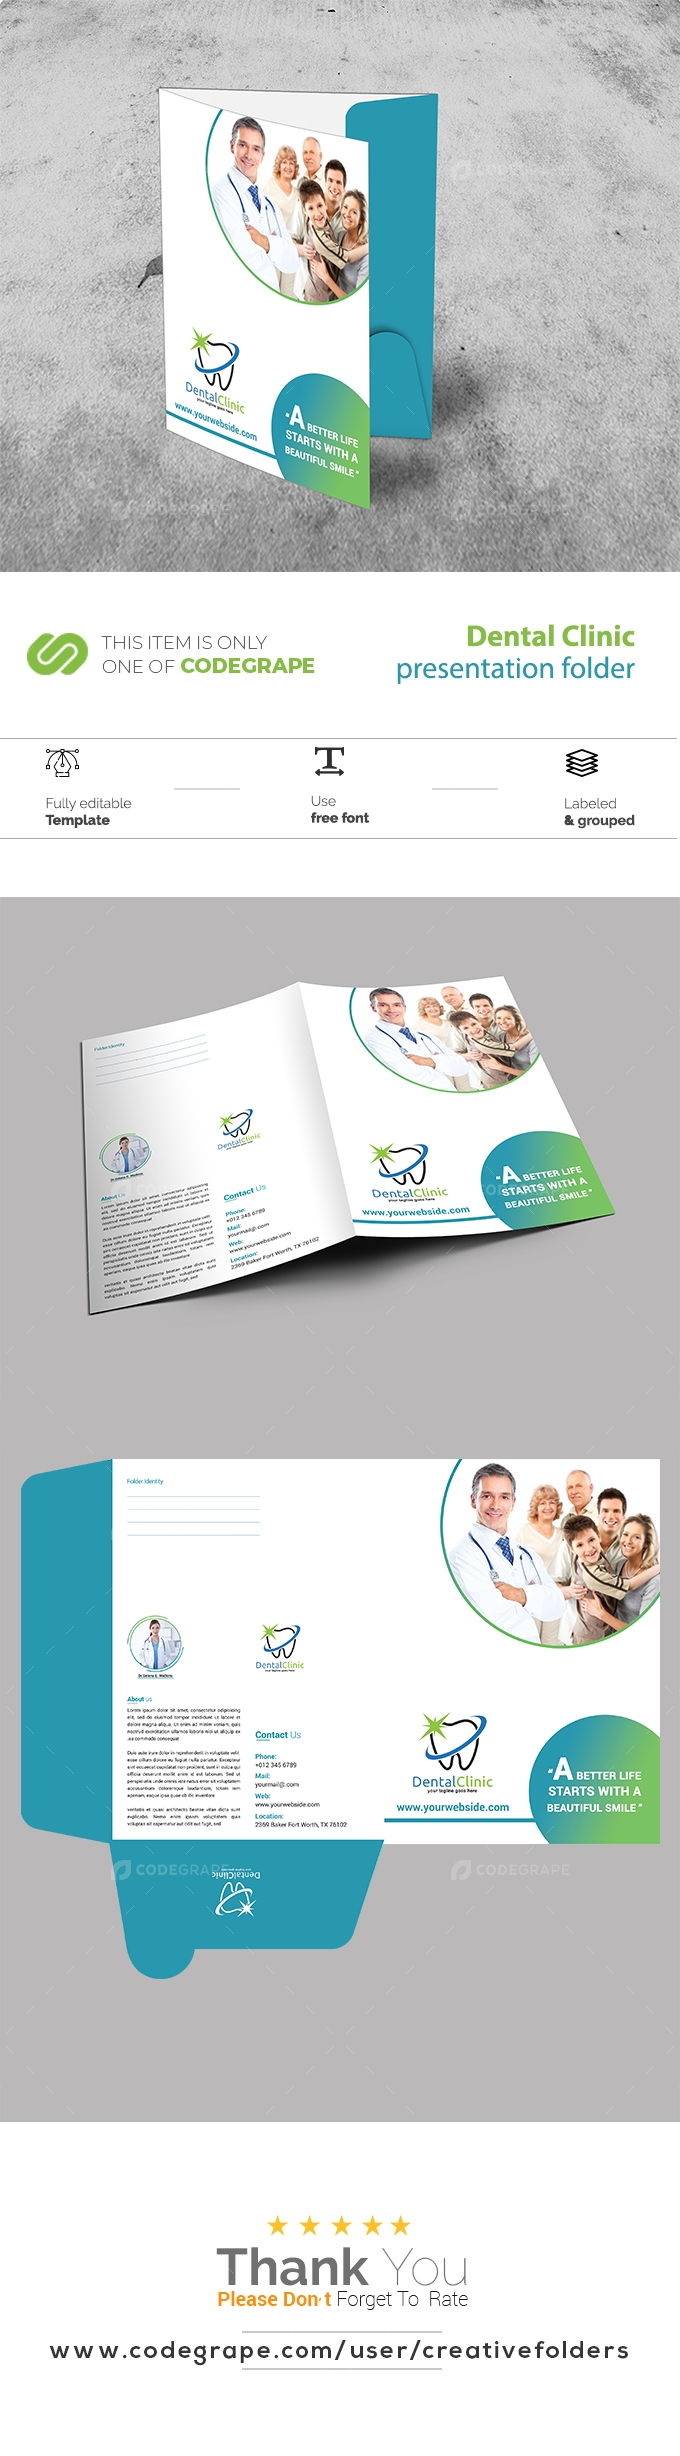 Dental Clinic Presentation Folder